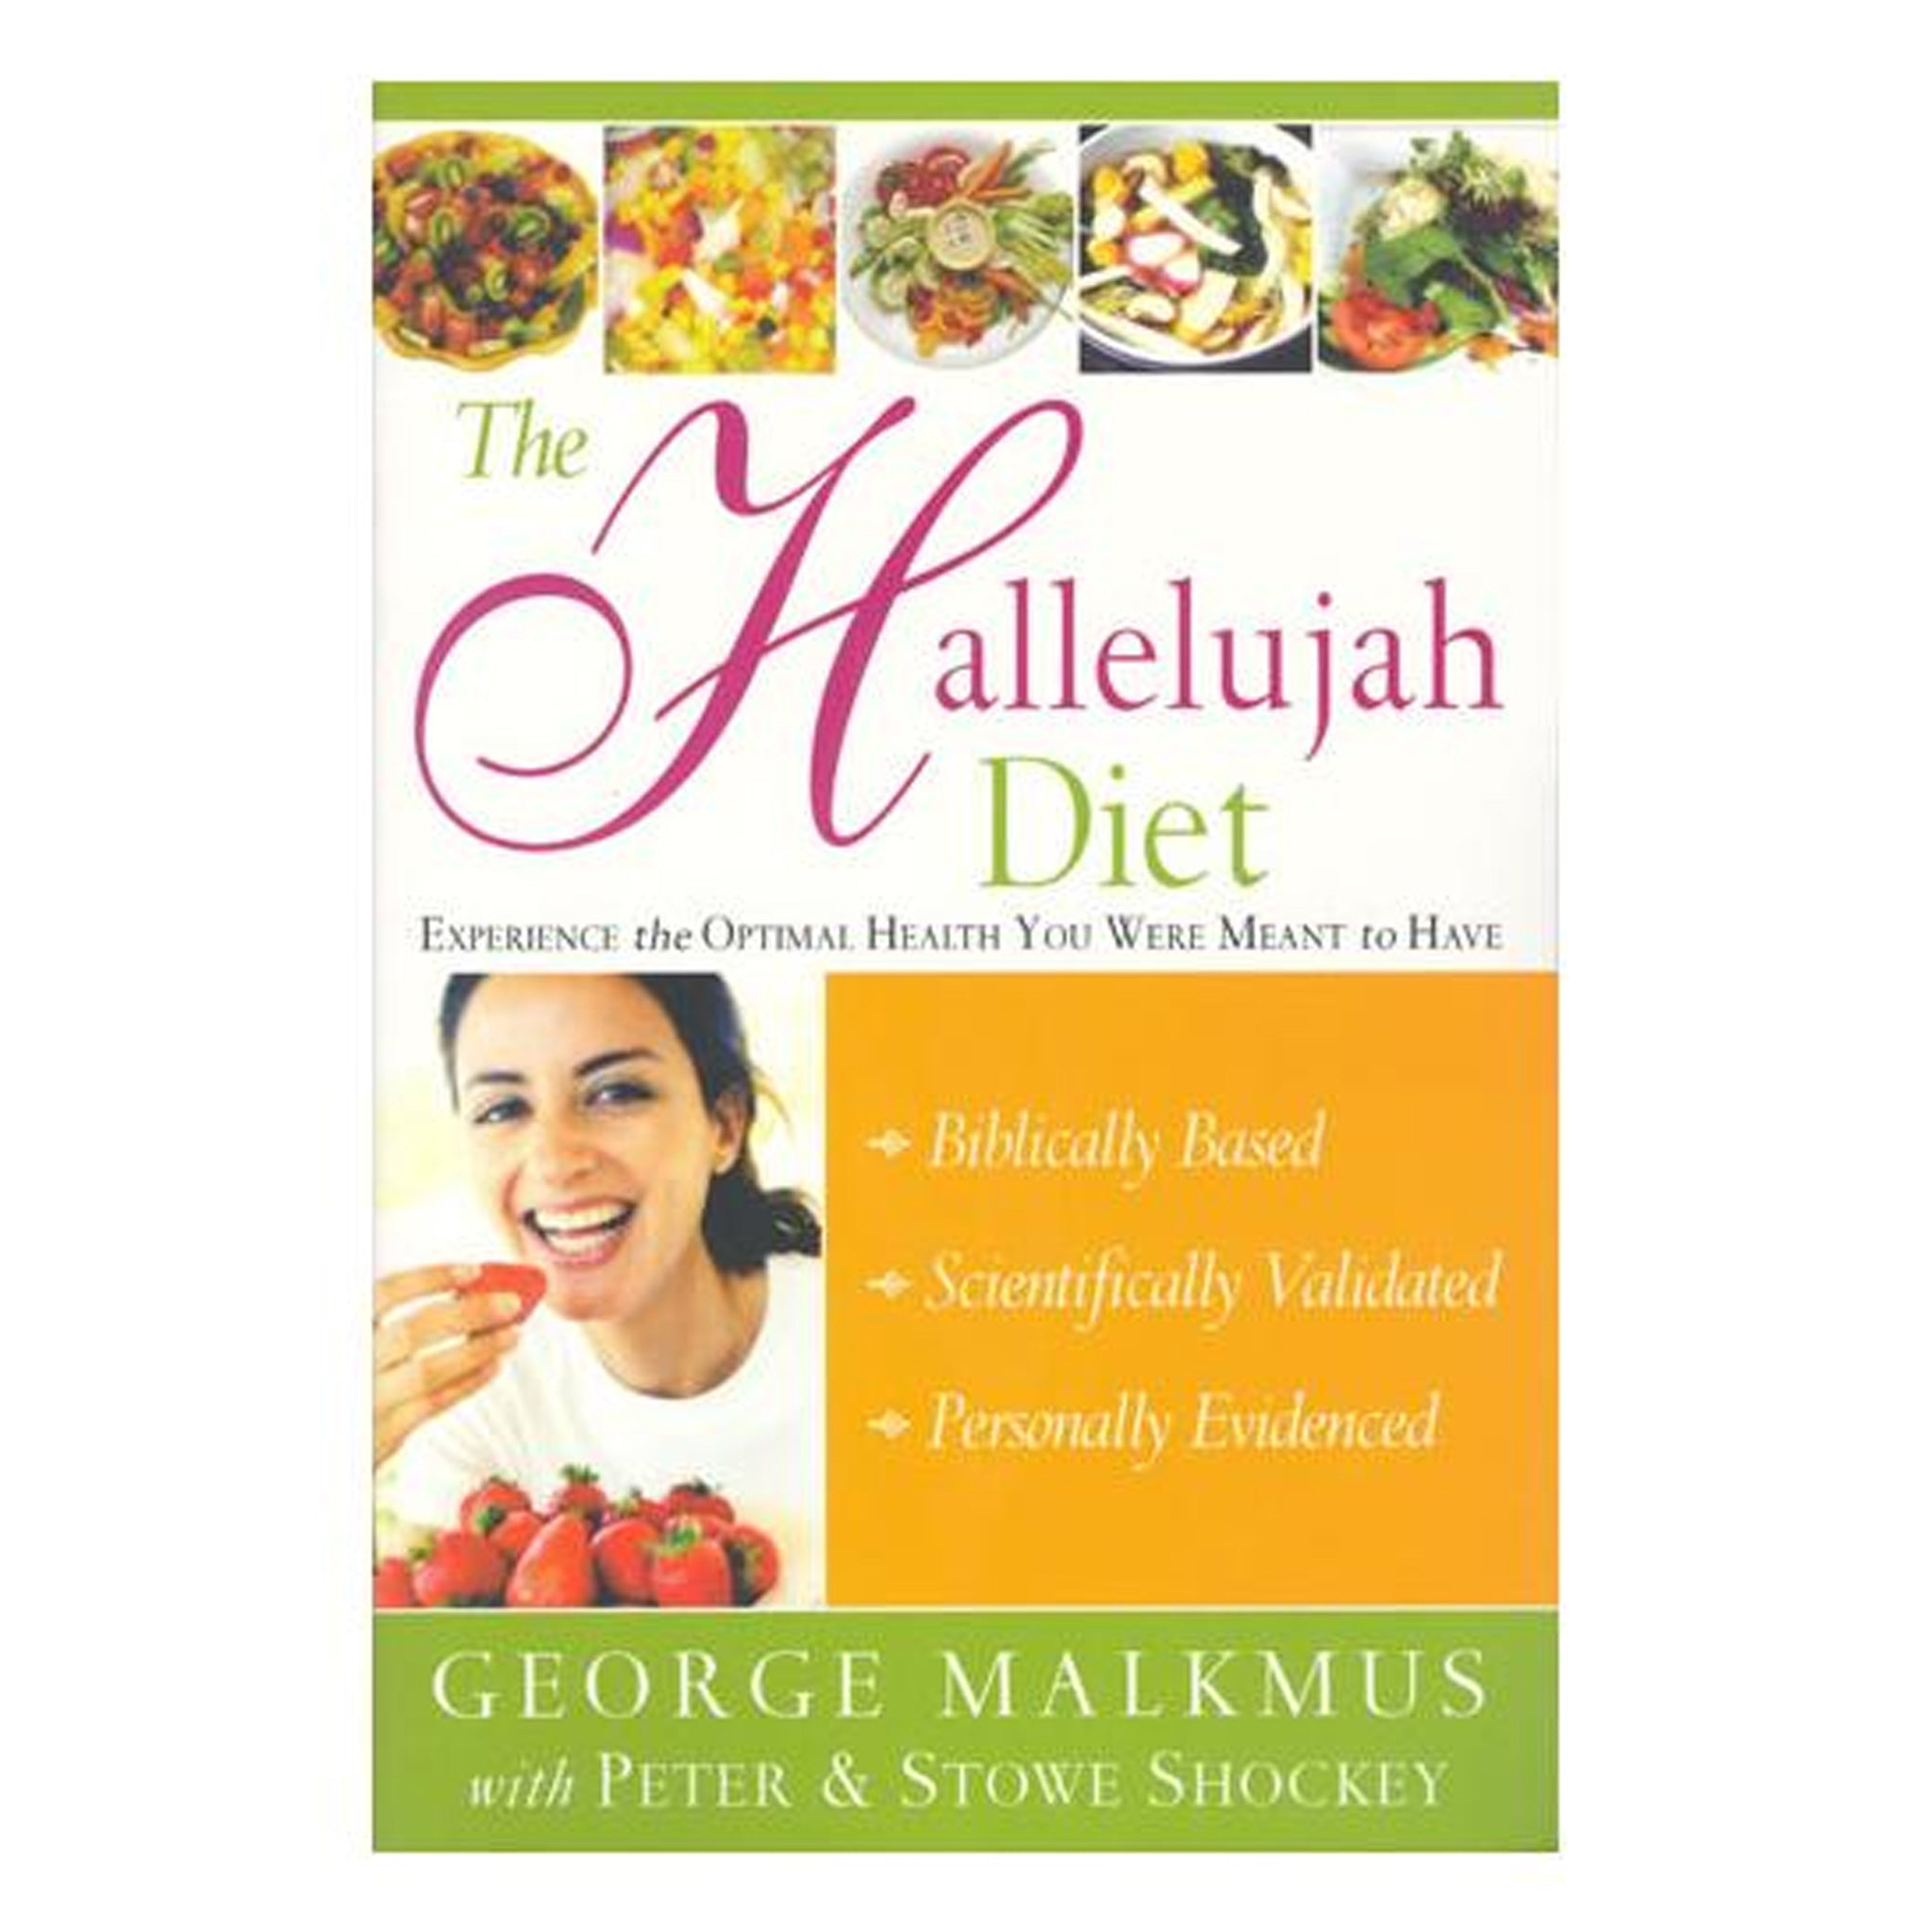 The Hallelujah Diet by Rev. George Malkmus, GPBGM06 - Tribest